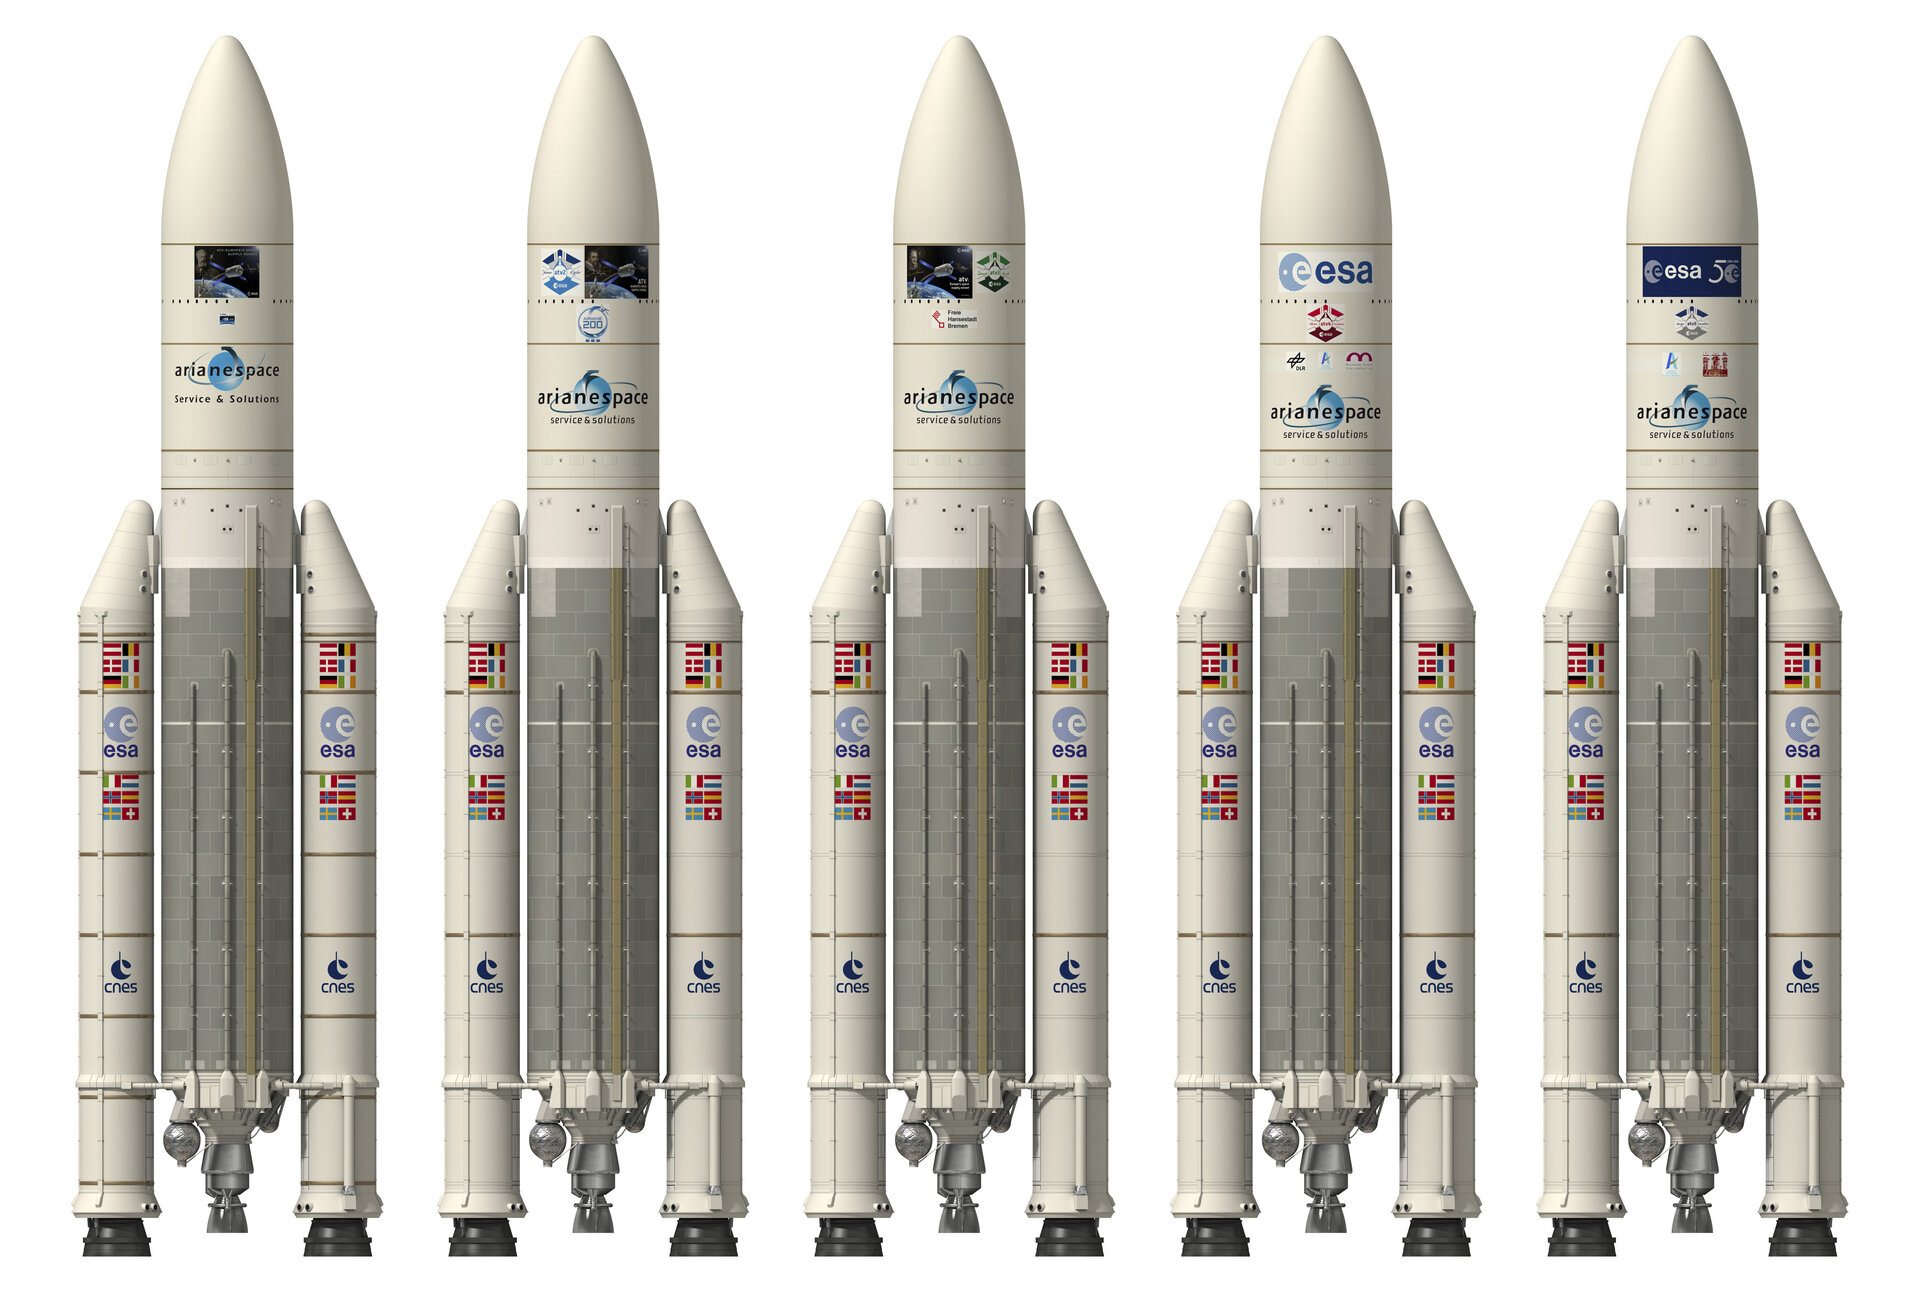 Artist's view of Ariane 5 with the different ATV